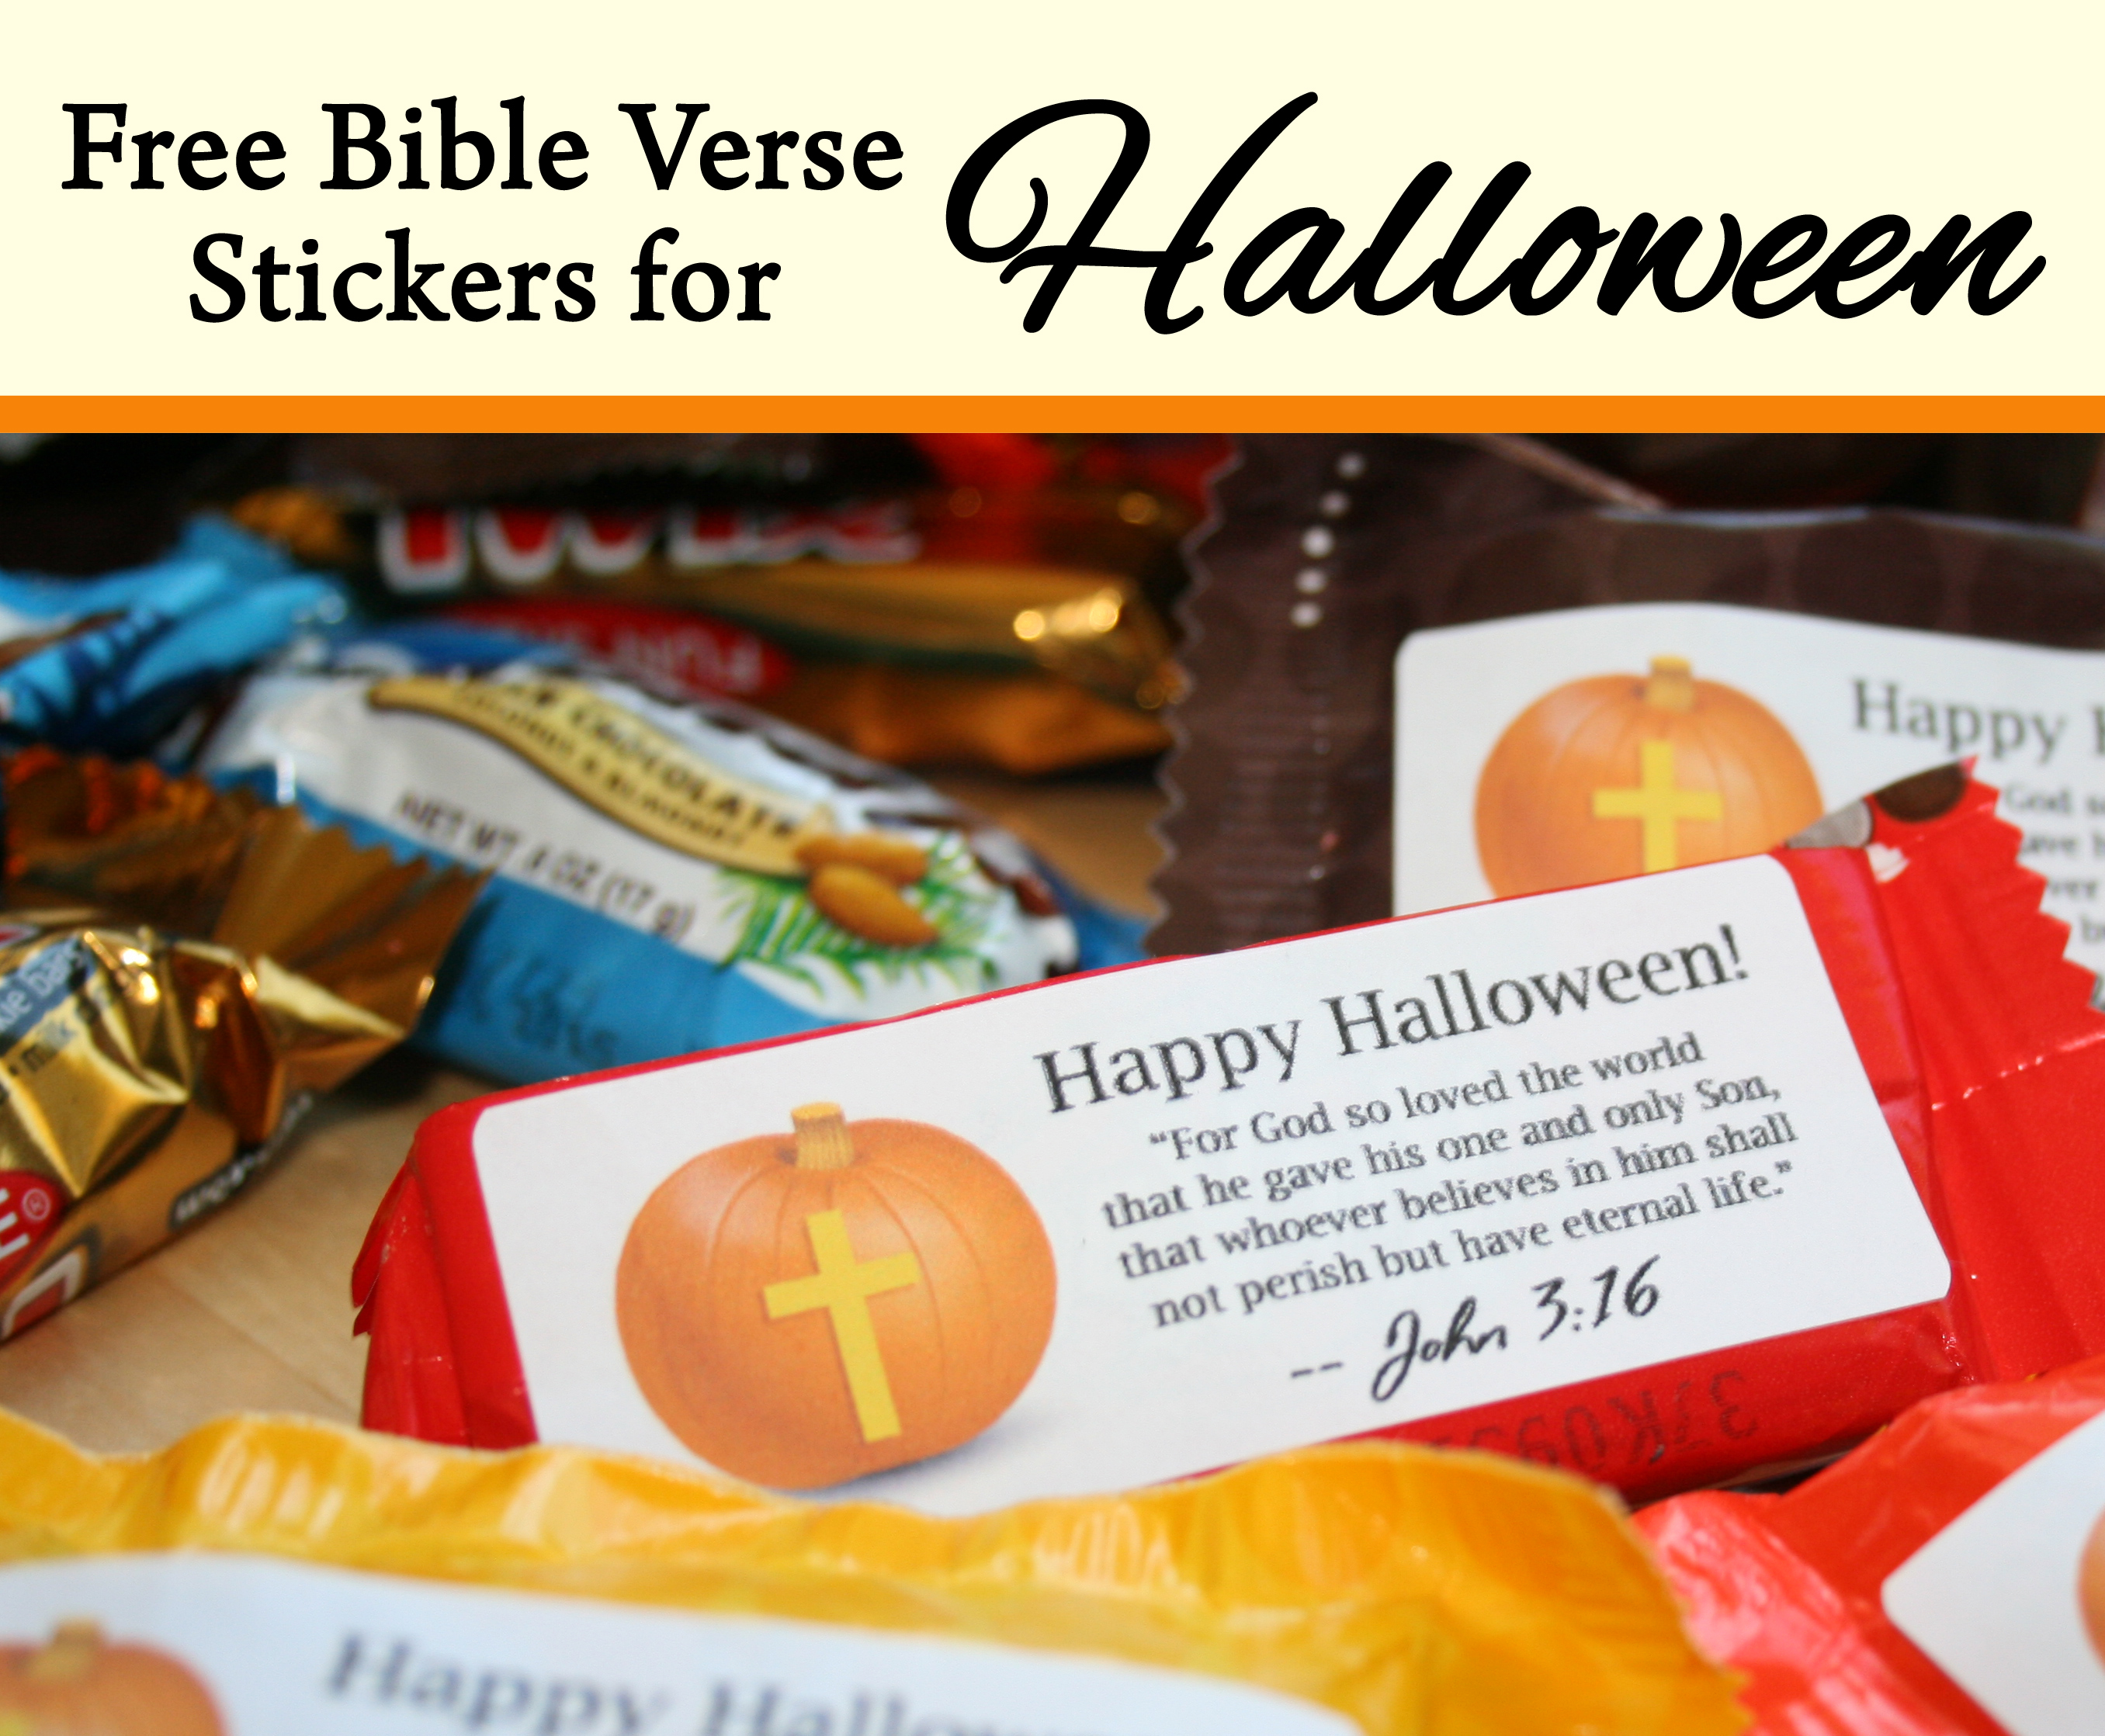 Bible Verse Stickers for Halloween Candy